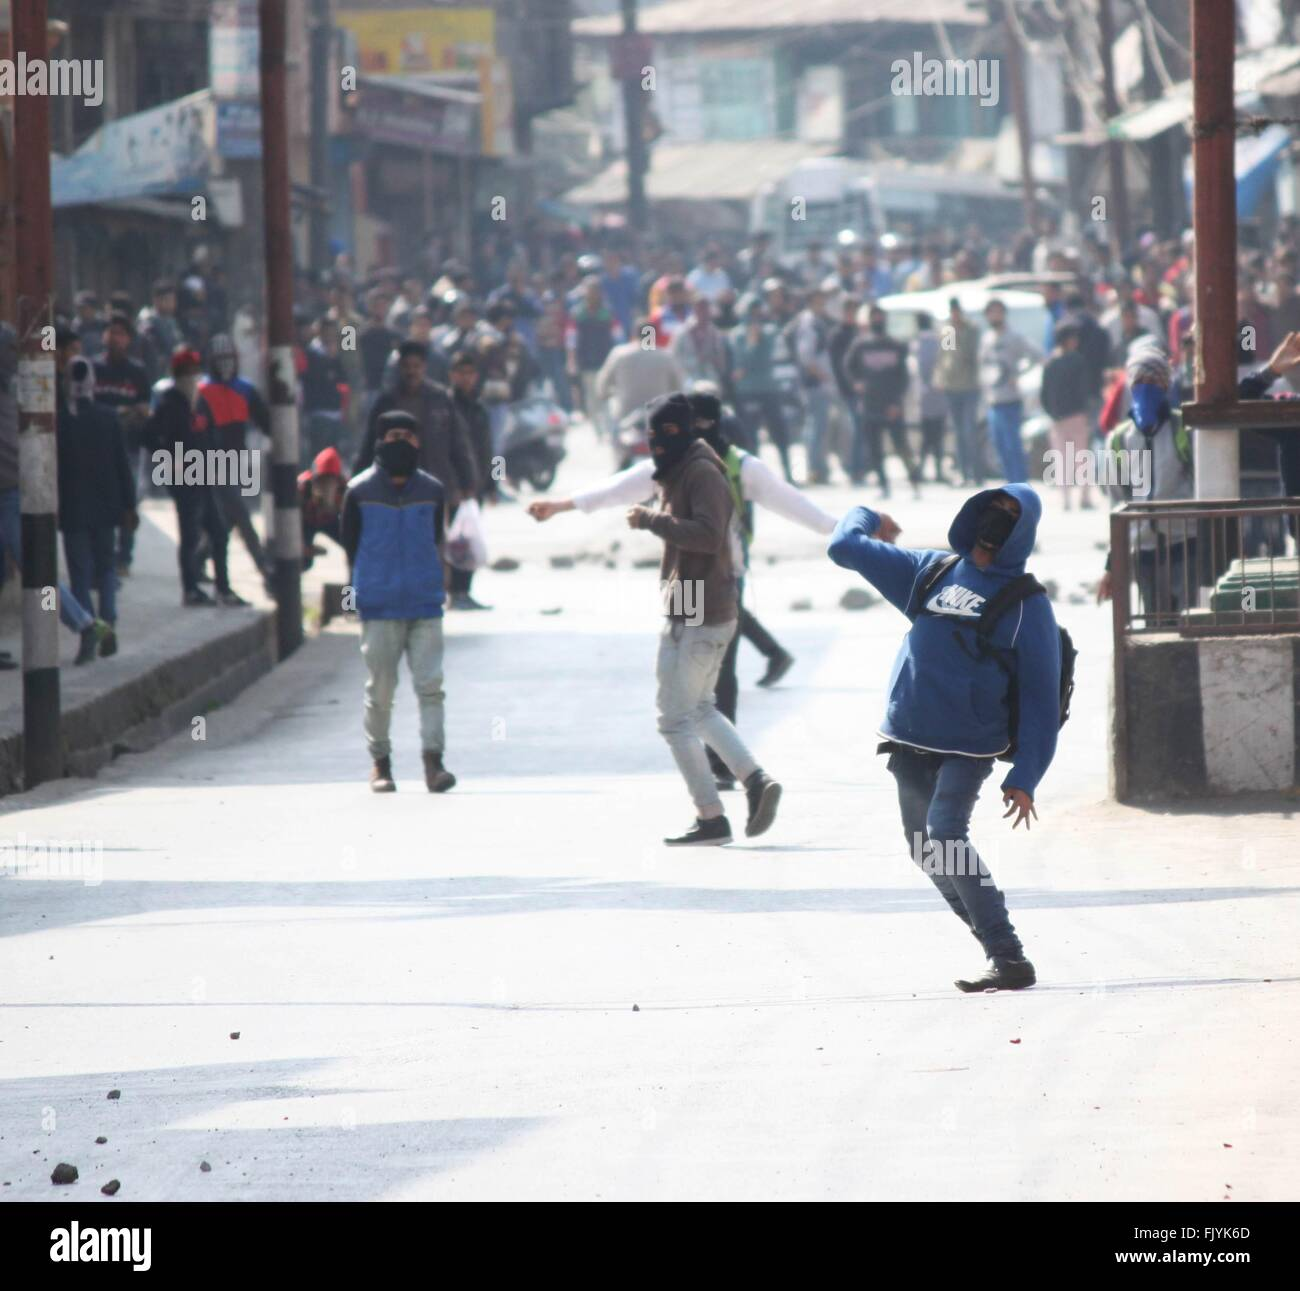 Kashmiri protester throws stone towards police during clashes in Srinagar. - Stock Image